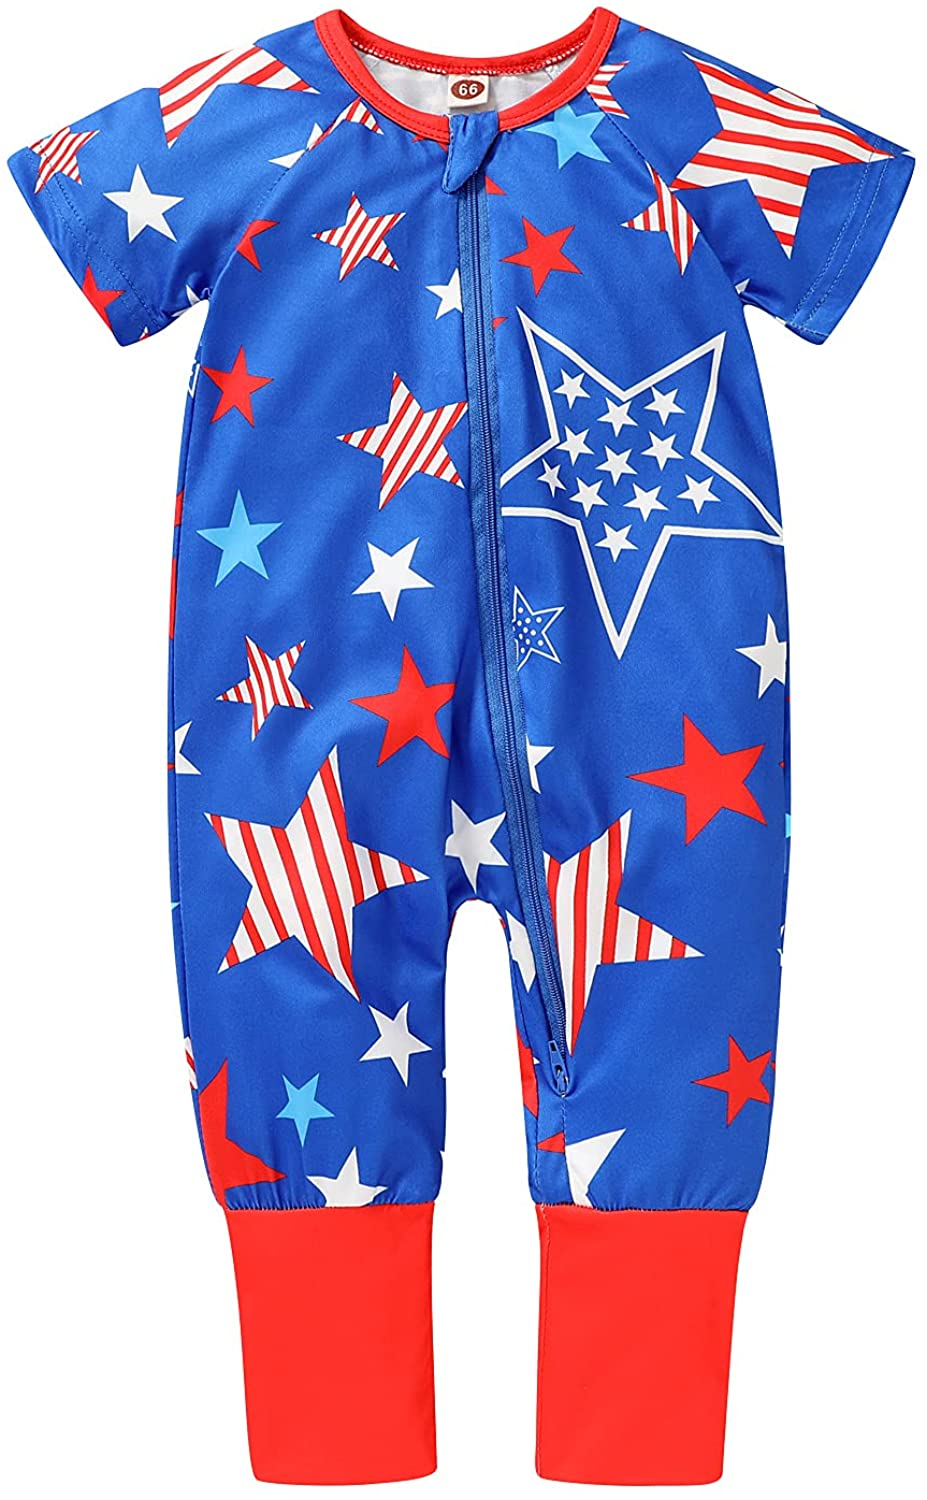 Unisex Baby Outfits 4th Of July Infant SEAL limited product Mail order cheap Girls Toddle Boys Clothes